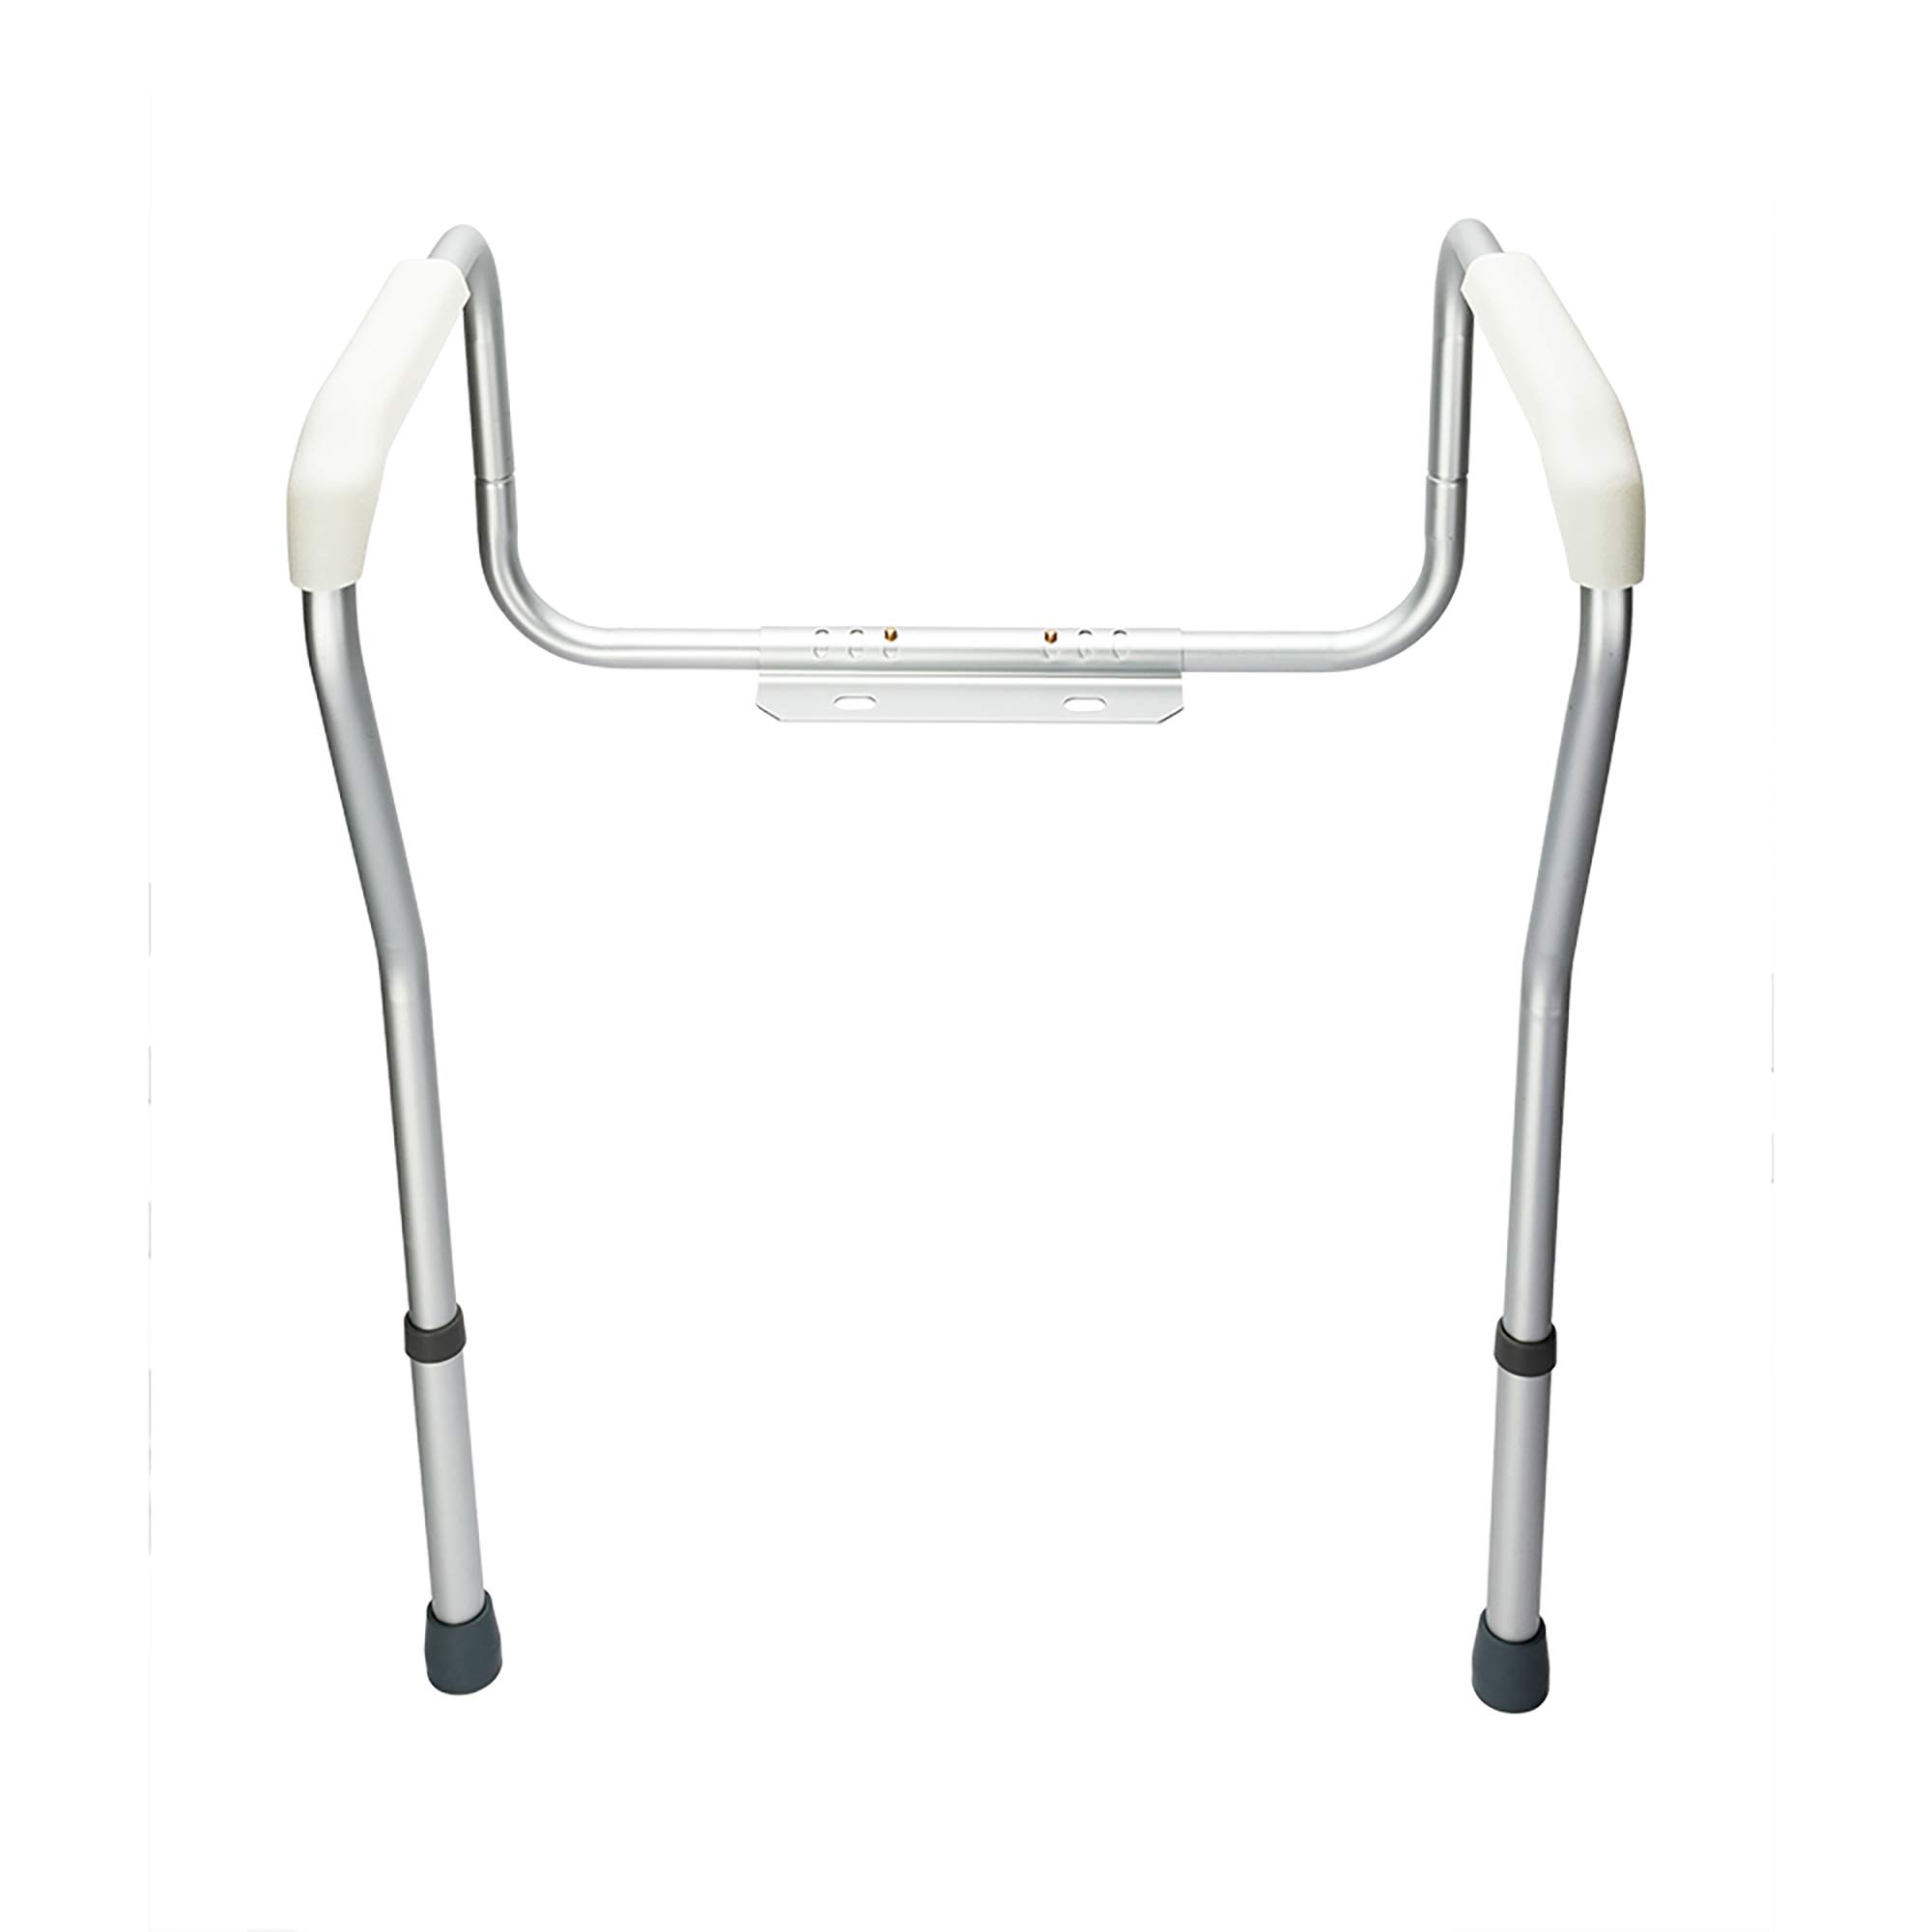 Veryke Toilet Safety Rail for Elderly, Disable Stand Alone Handrail on Banthroom (Silver)